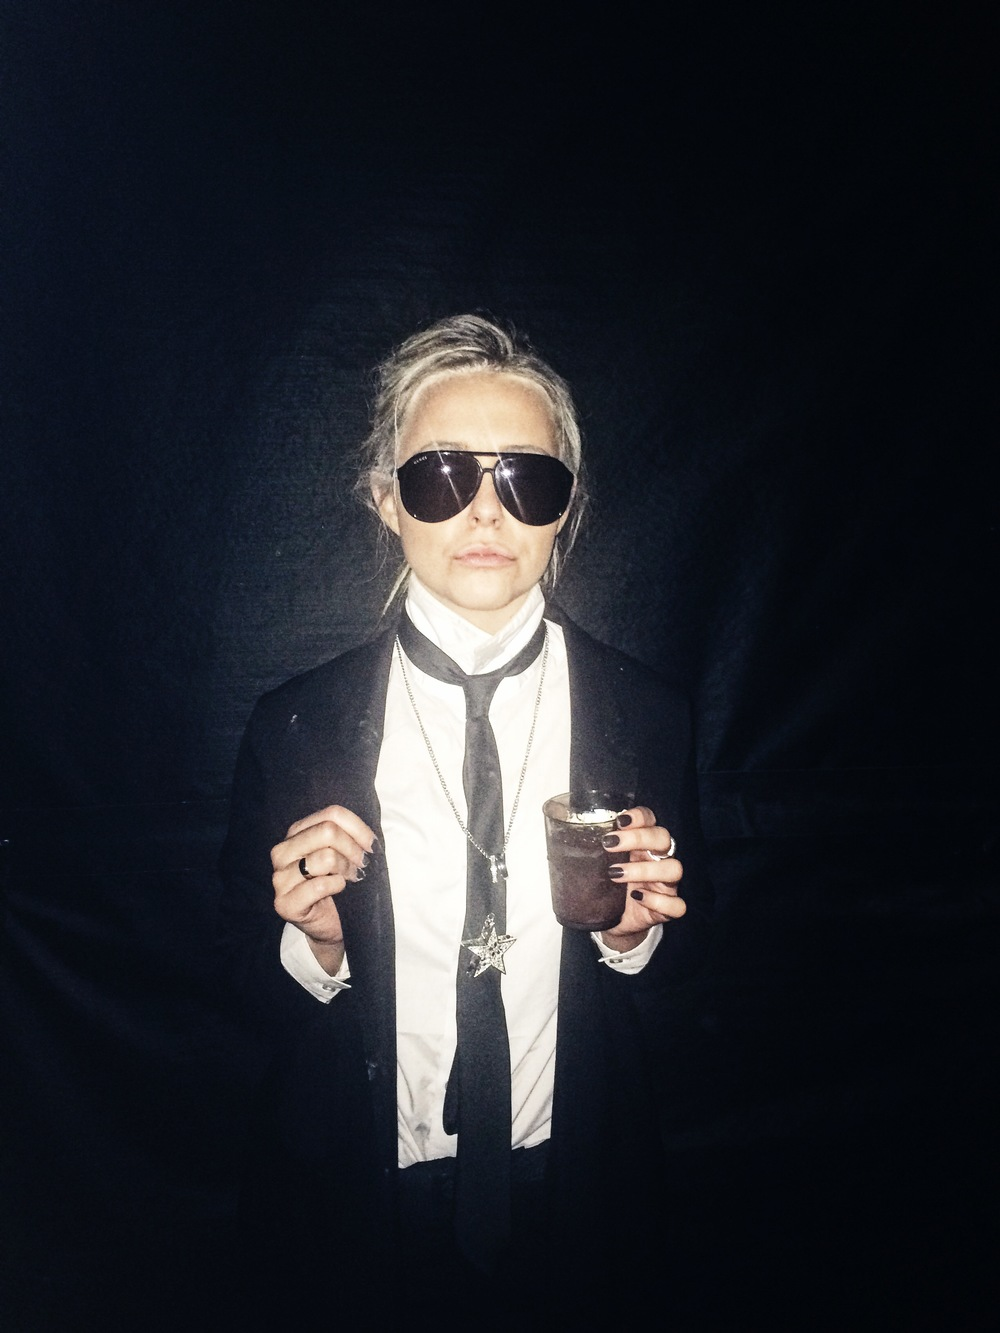 Karl Lagerfeld // Fit: Gucci sunnies + H&M suit and accessories.